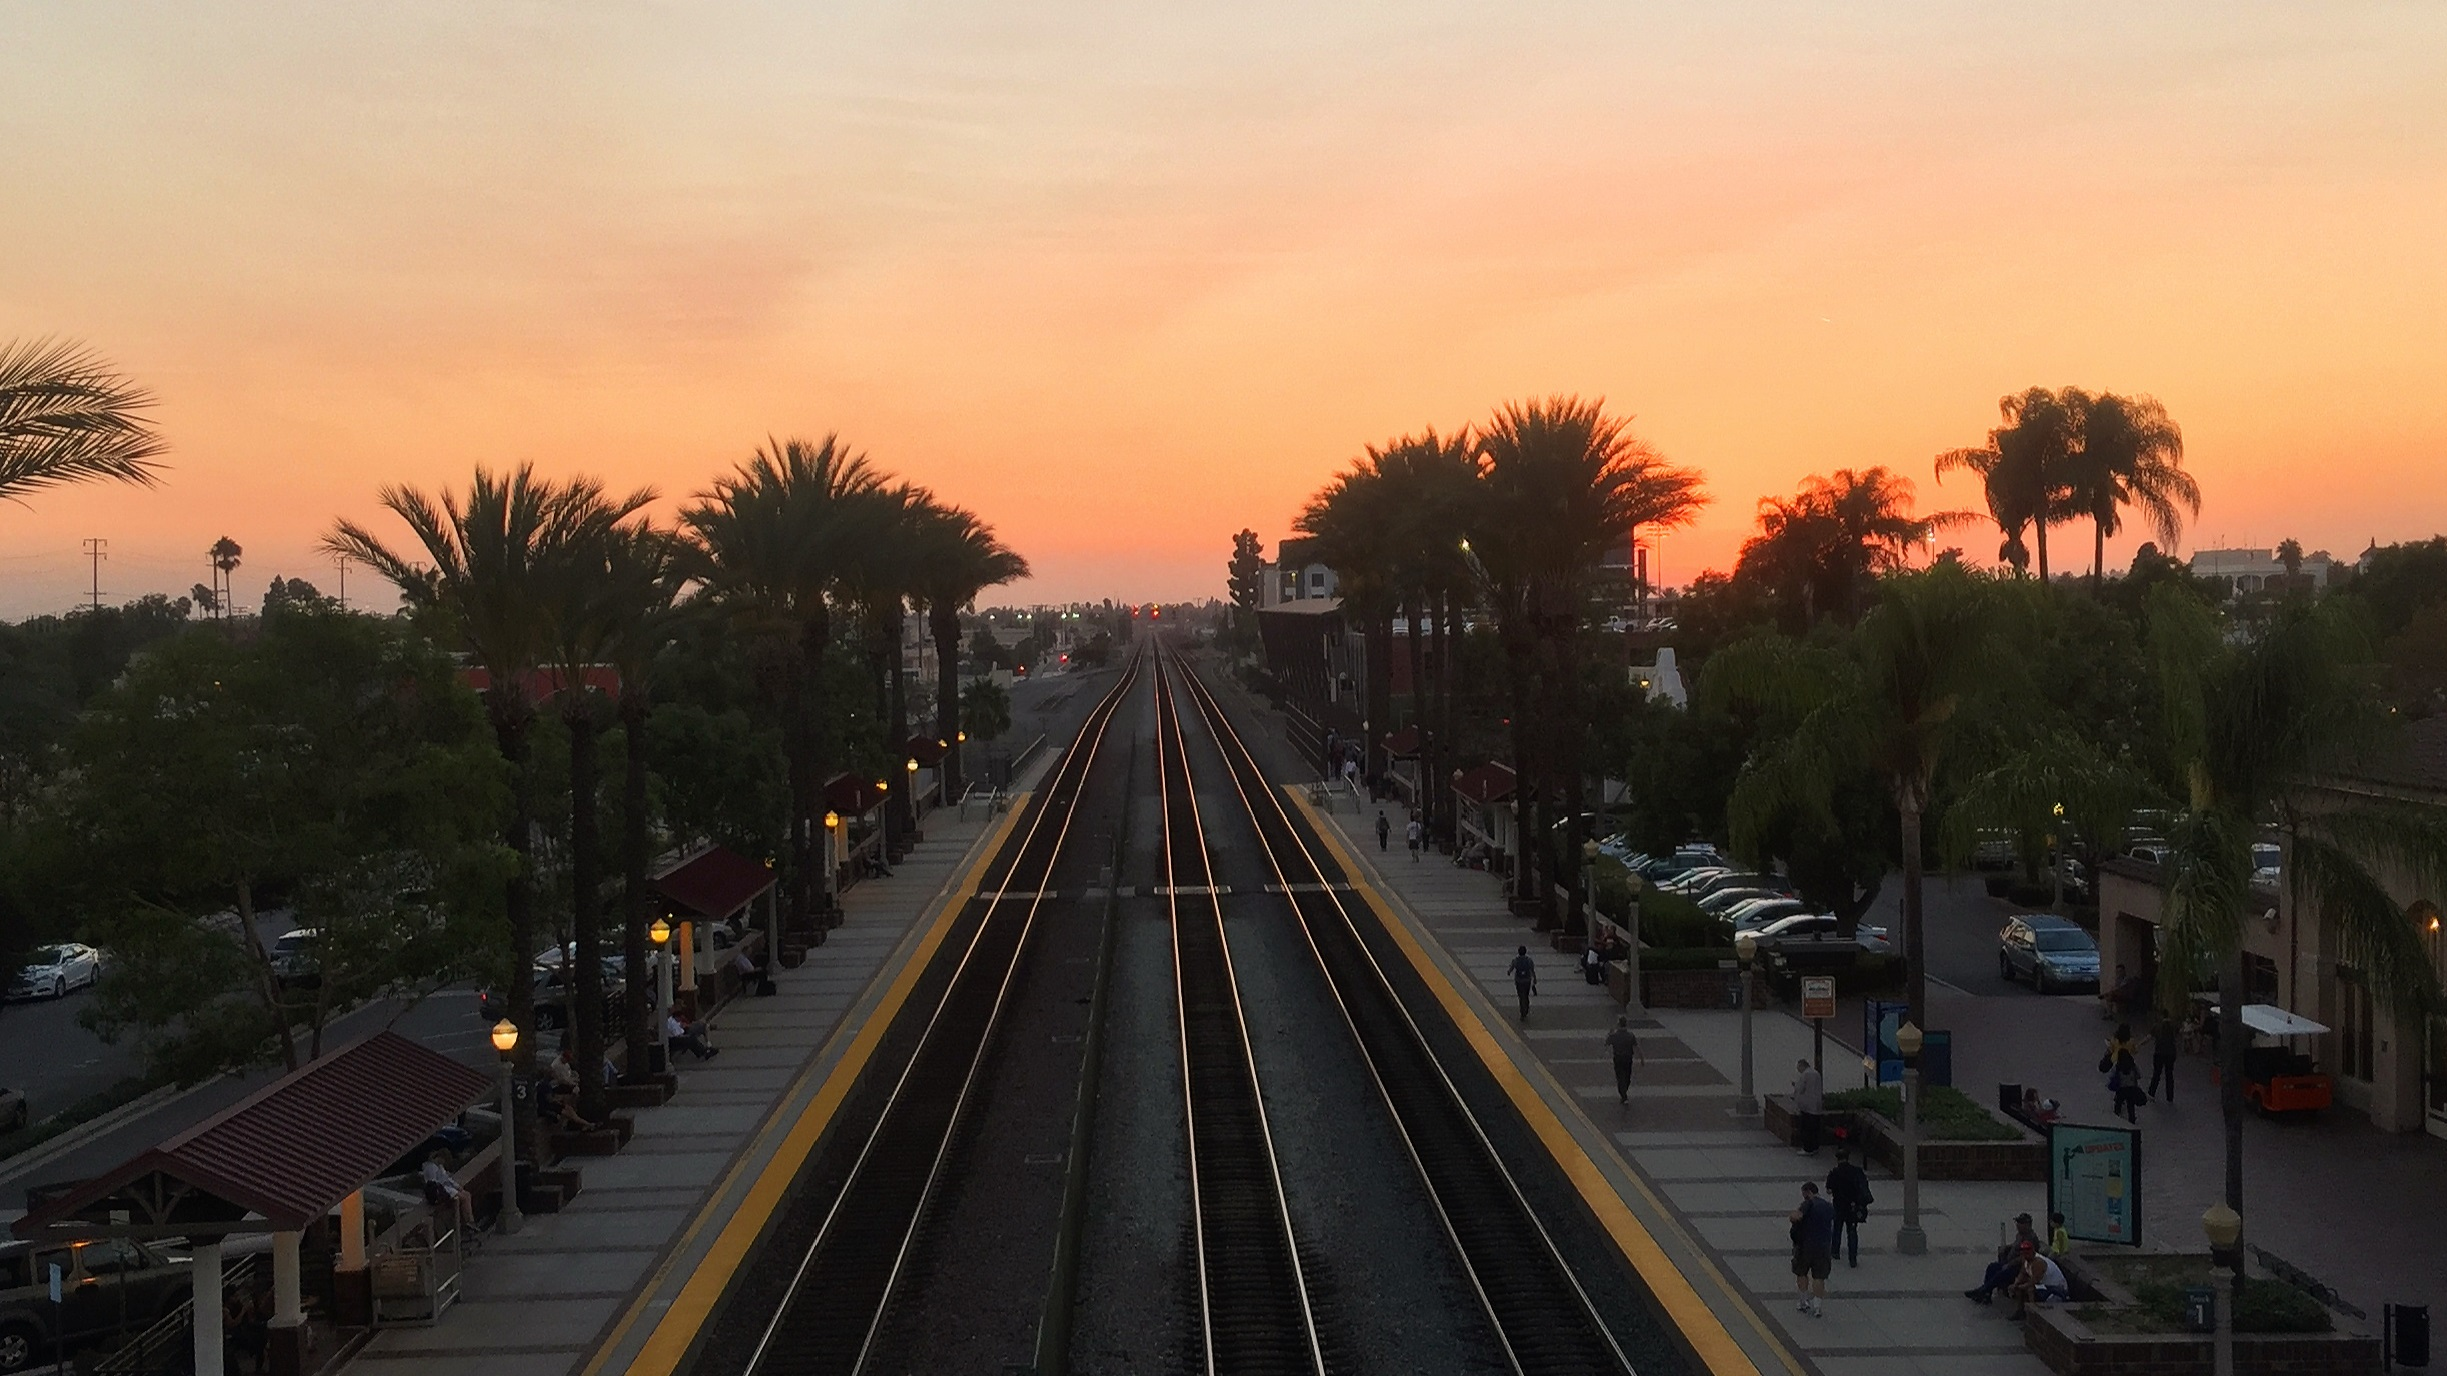 Fullerton Station at Sunset, looking west. Photo by Sergio Magallon, 2016.